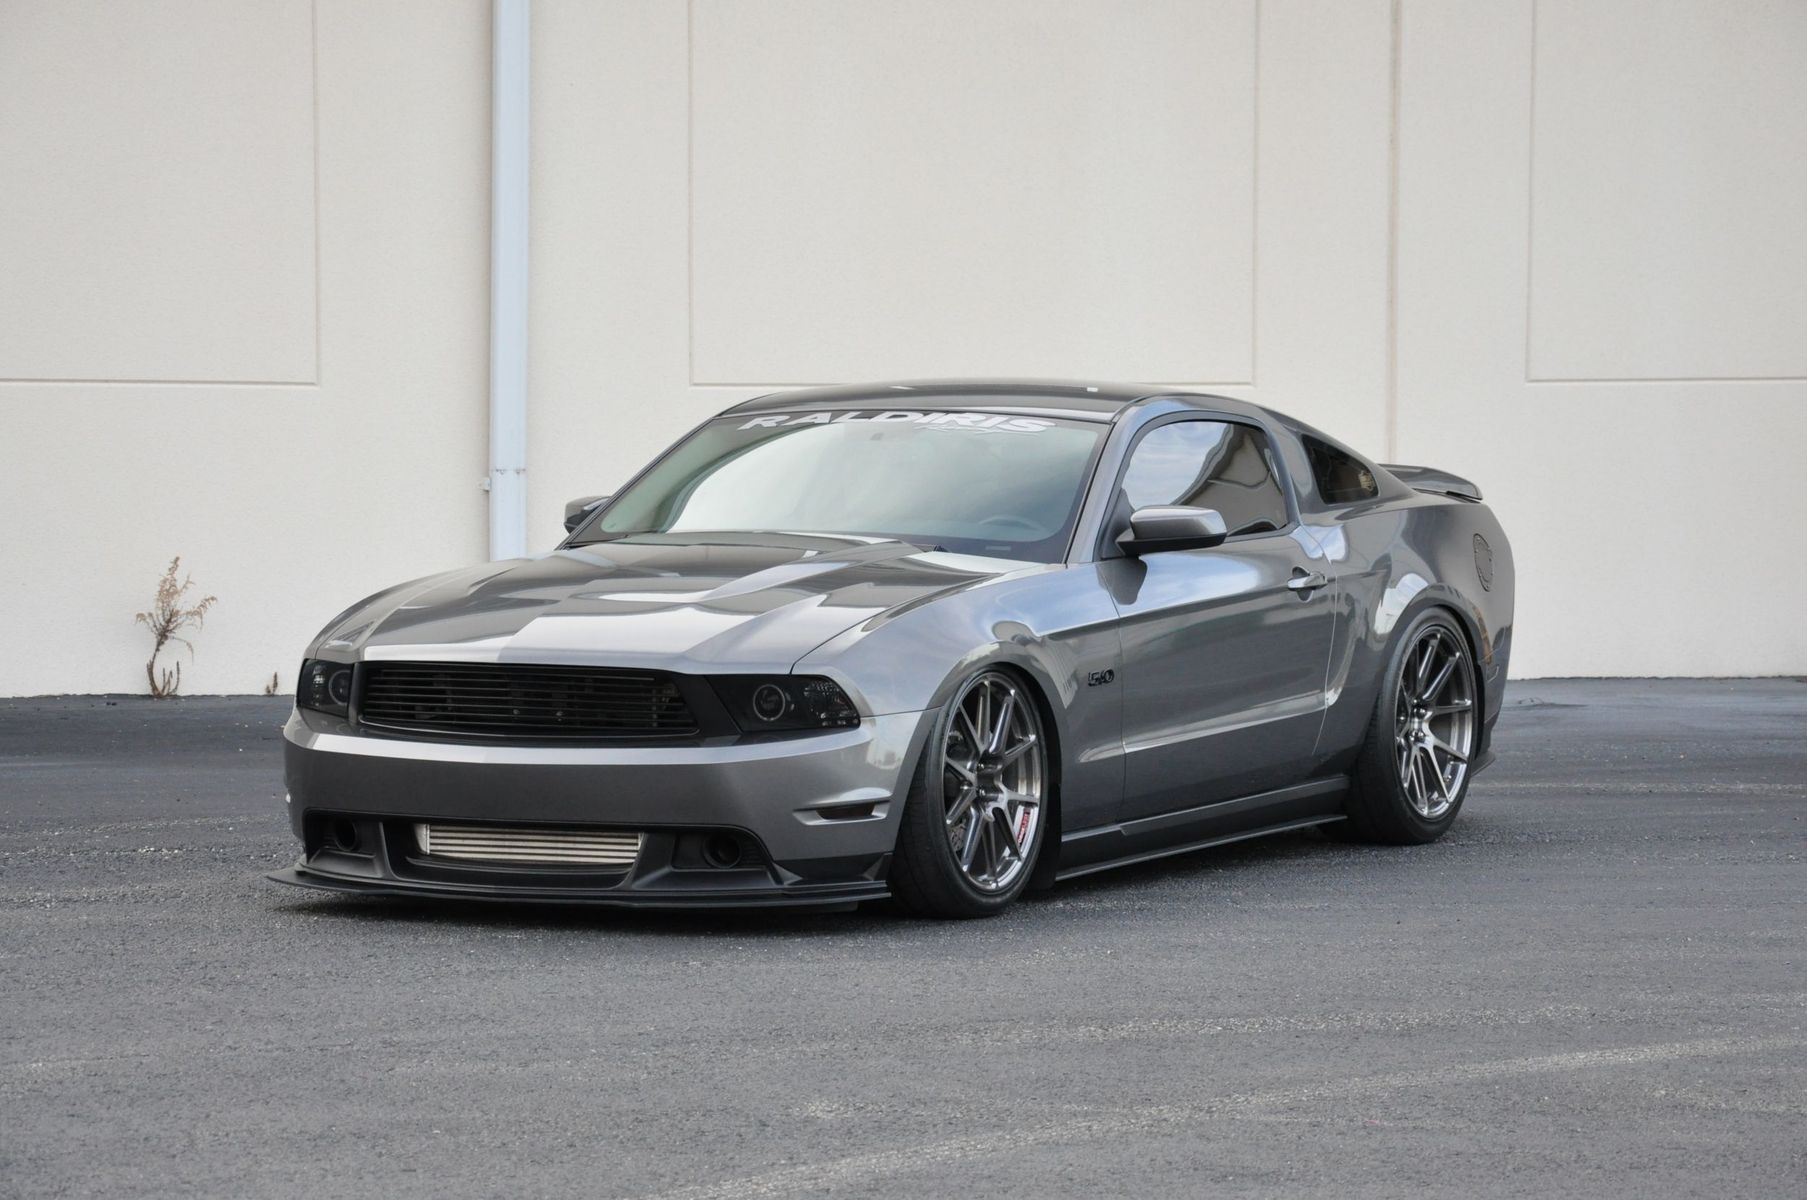 2011 Ford Mustang | Sharad's Mustang GT on Forgeline GA1R Open Lug Wheels - Stance